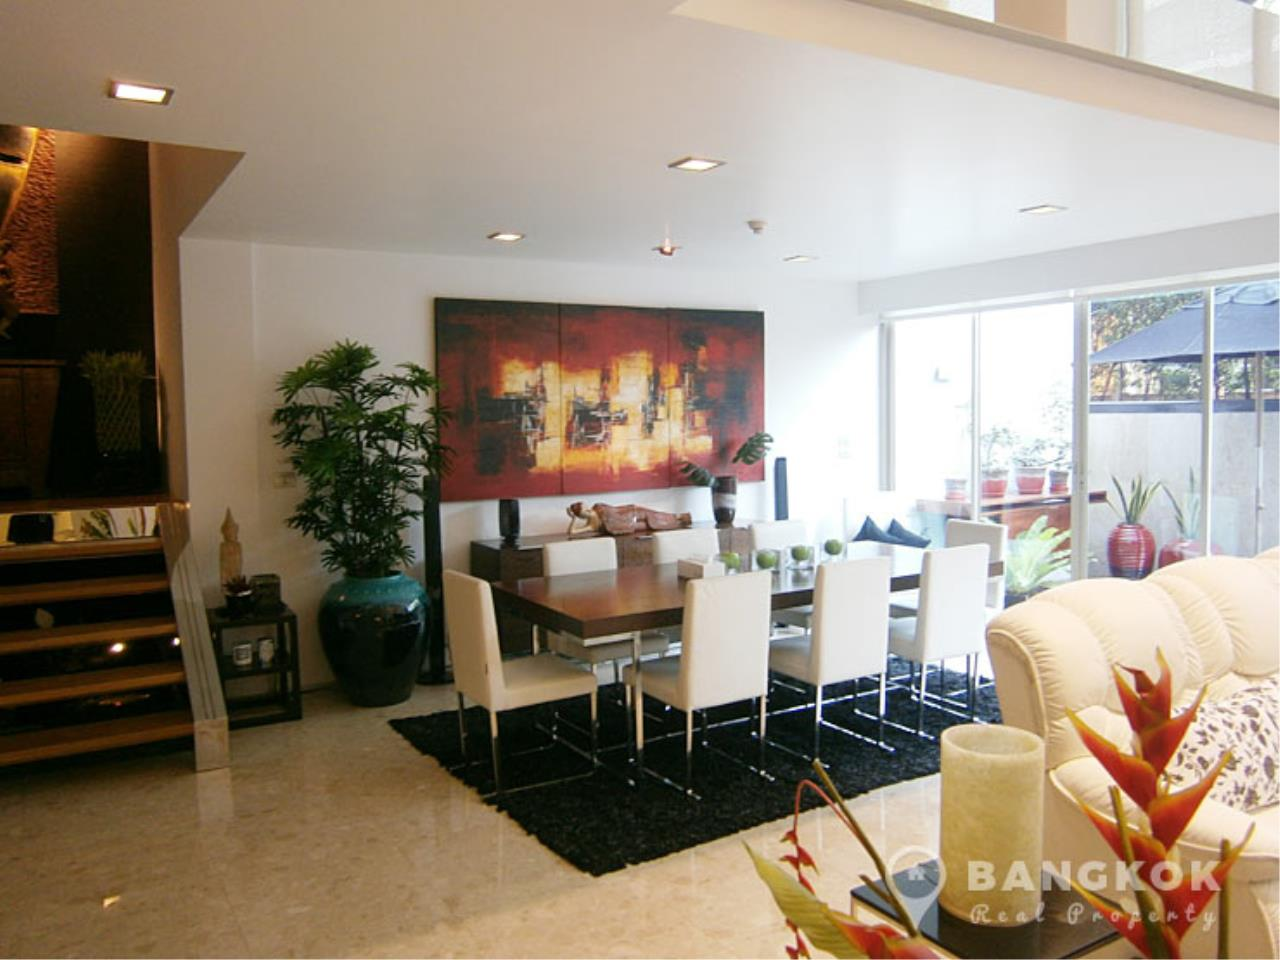 Bangkok Real Property Agency's Ficus Lane | A Fabulous Spacious 3 Bed 4 Bath Duplex near BTS 39